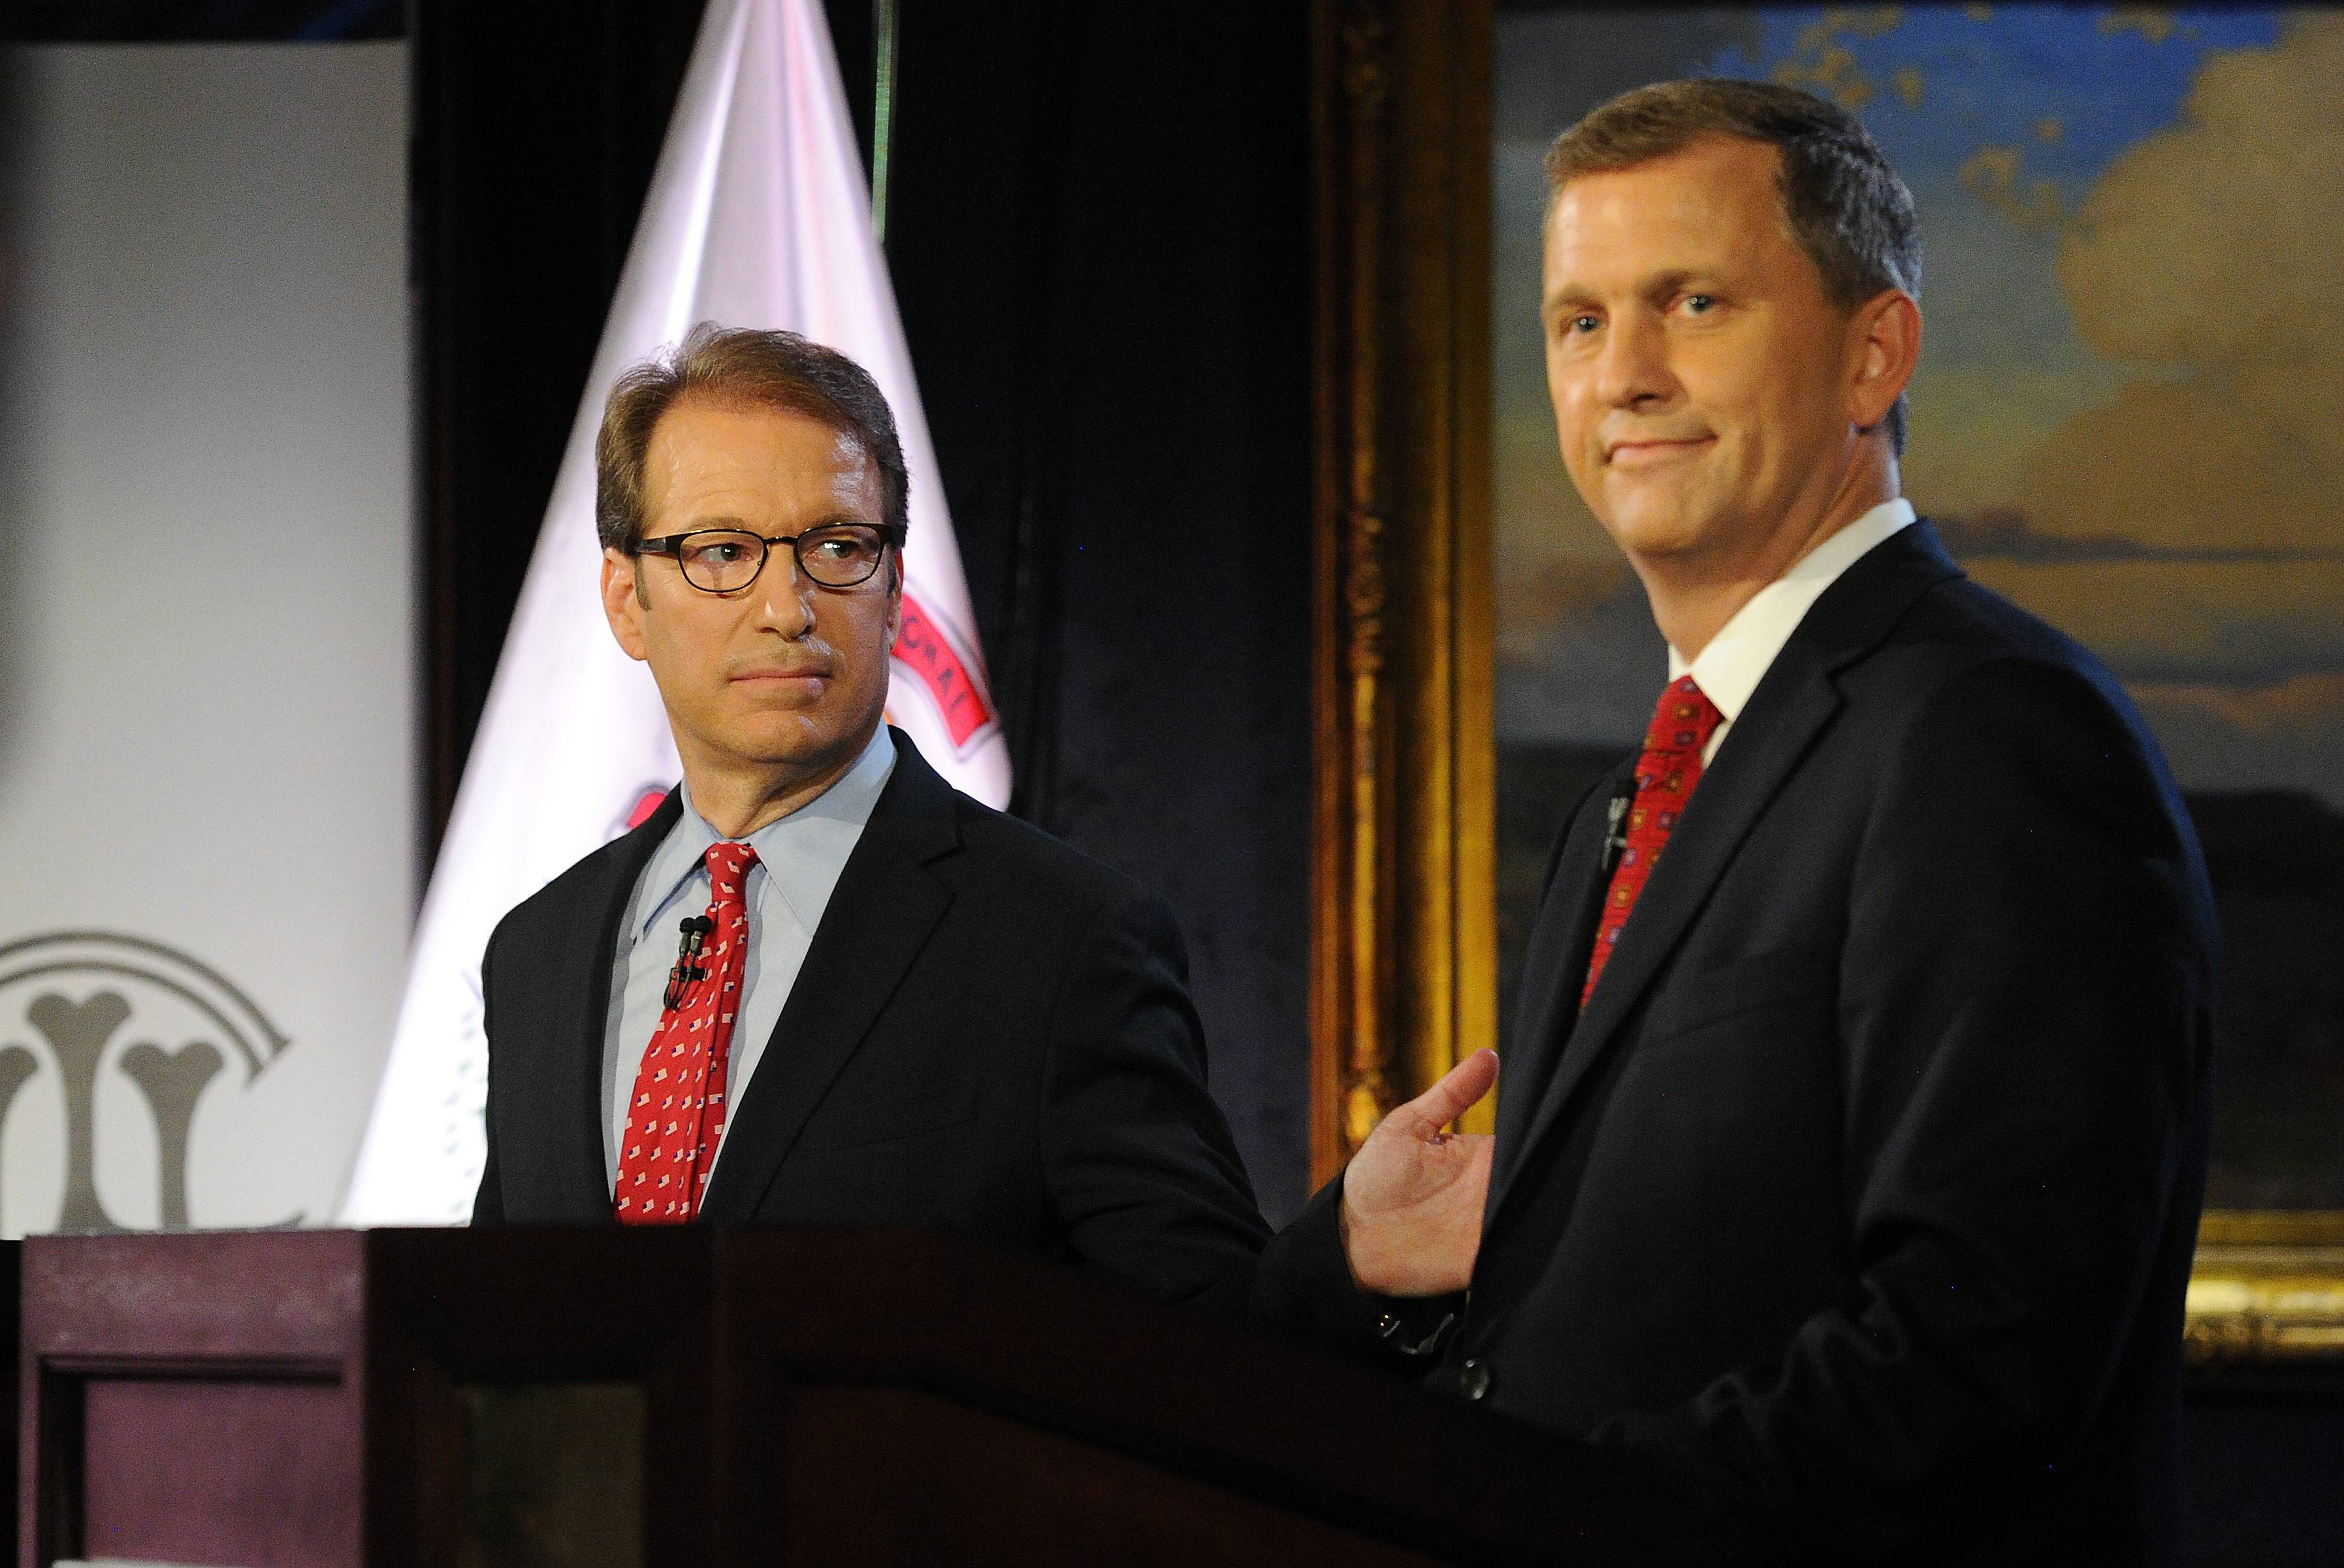 Health care is a divisive issue between candidates for U.S. Congress in the 6th District, Republican incumbent Peter Roskam, left, and Democratic challenger Sean Casten.